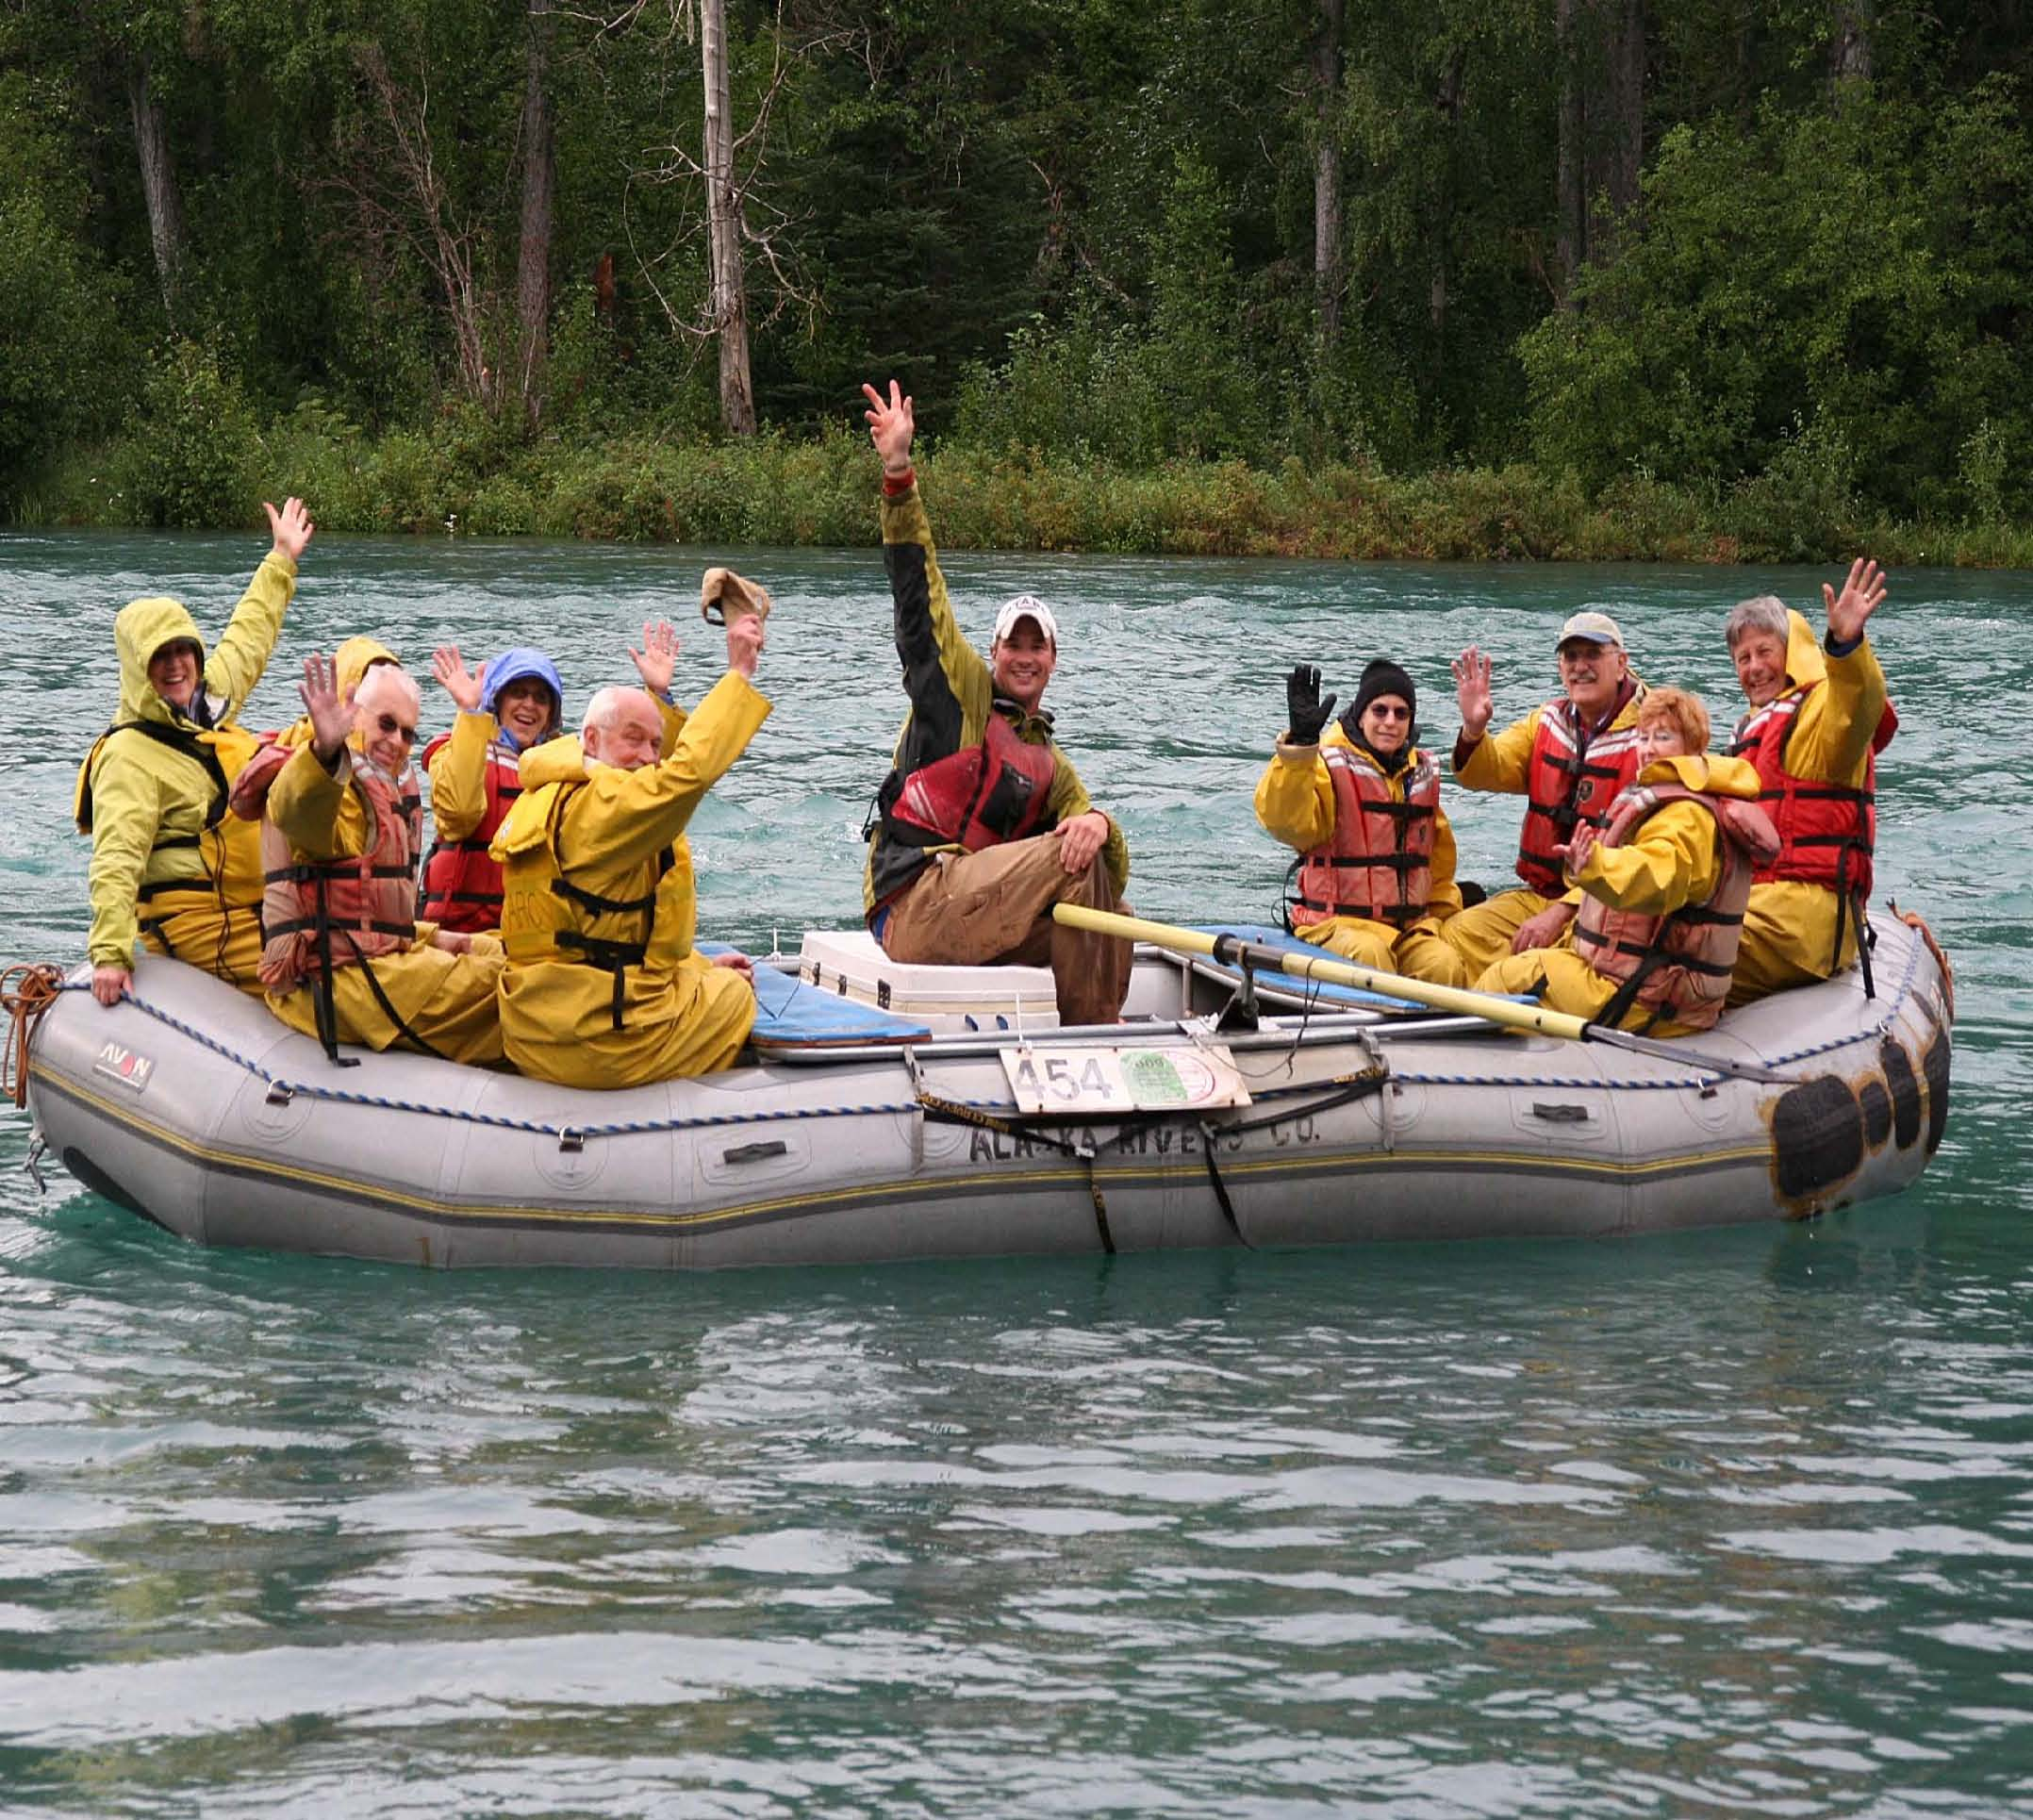 Upper Kenai River Scenic Float Trip for the Whole Family